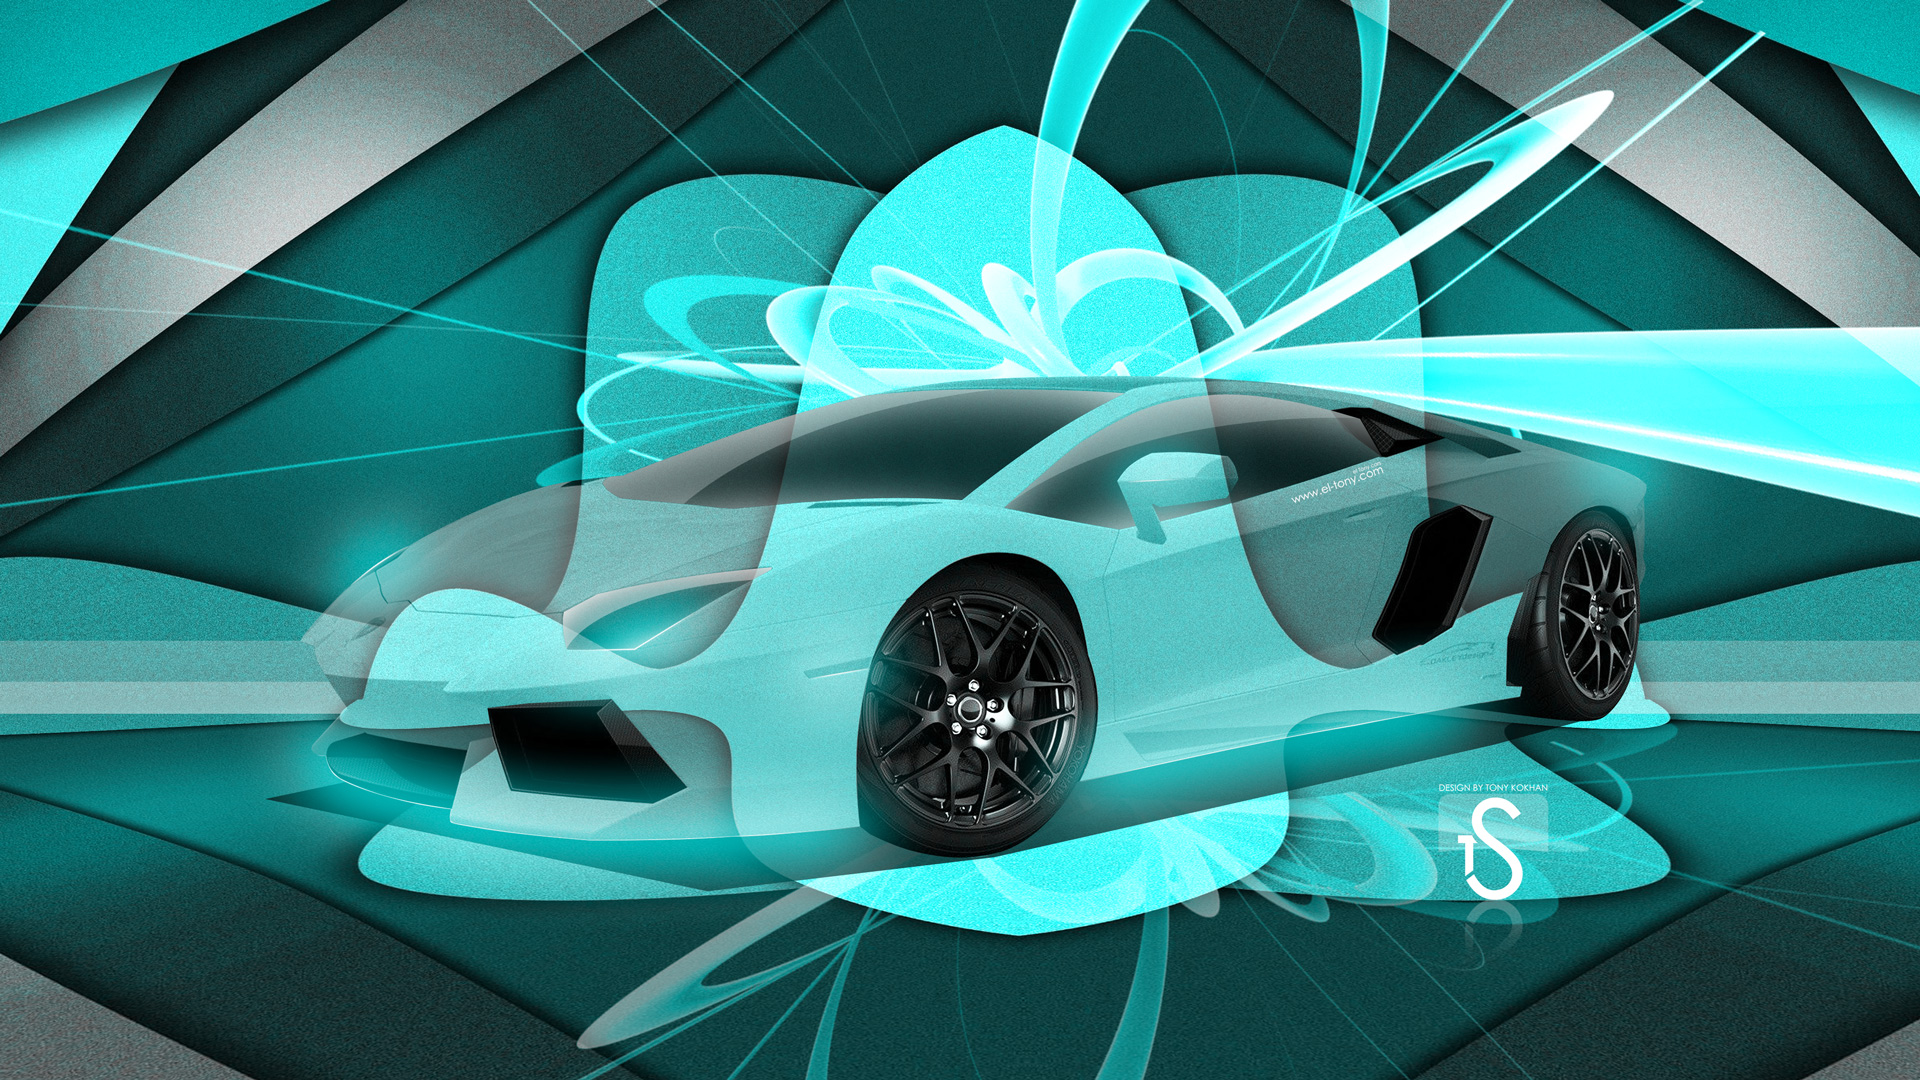 Lamborghini Aventador Super Abstract Turquoise Car 2013 Design .